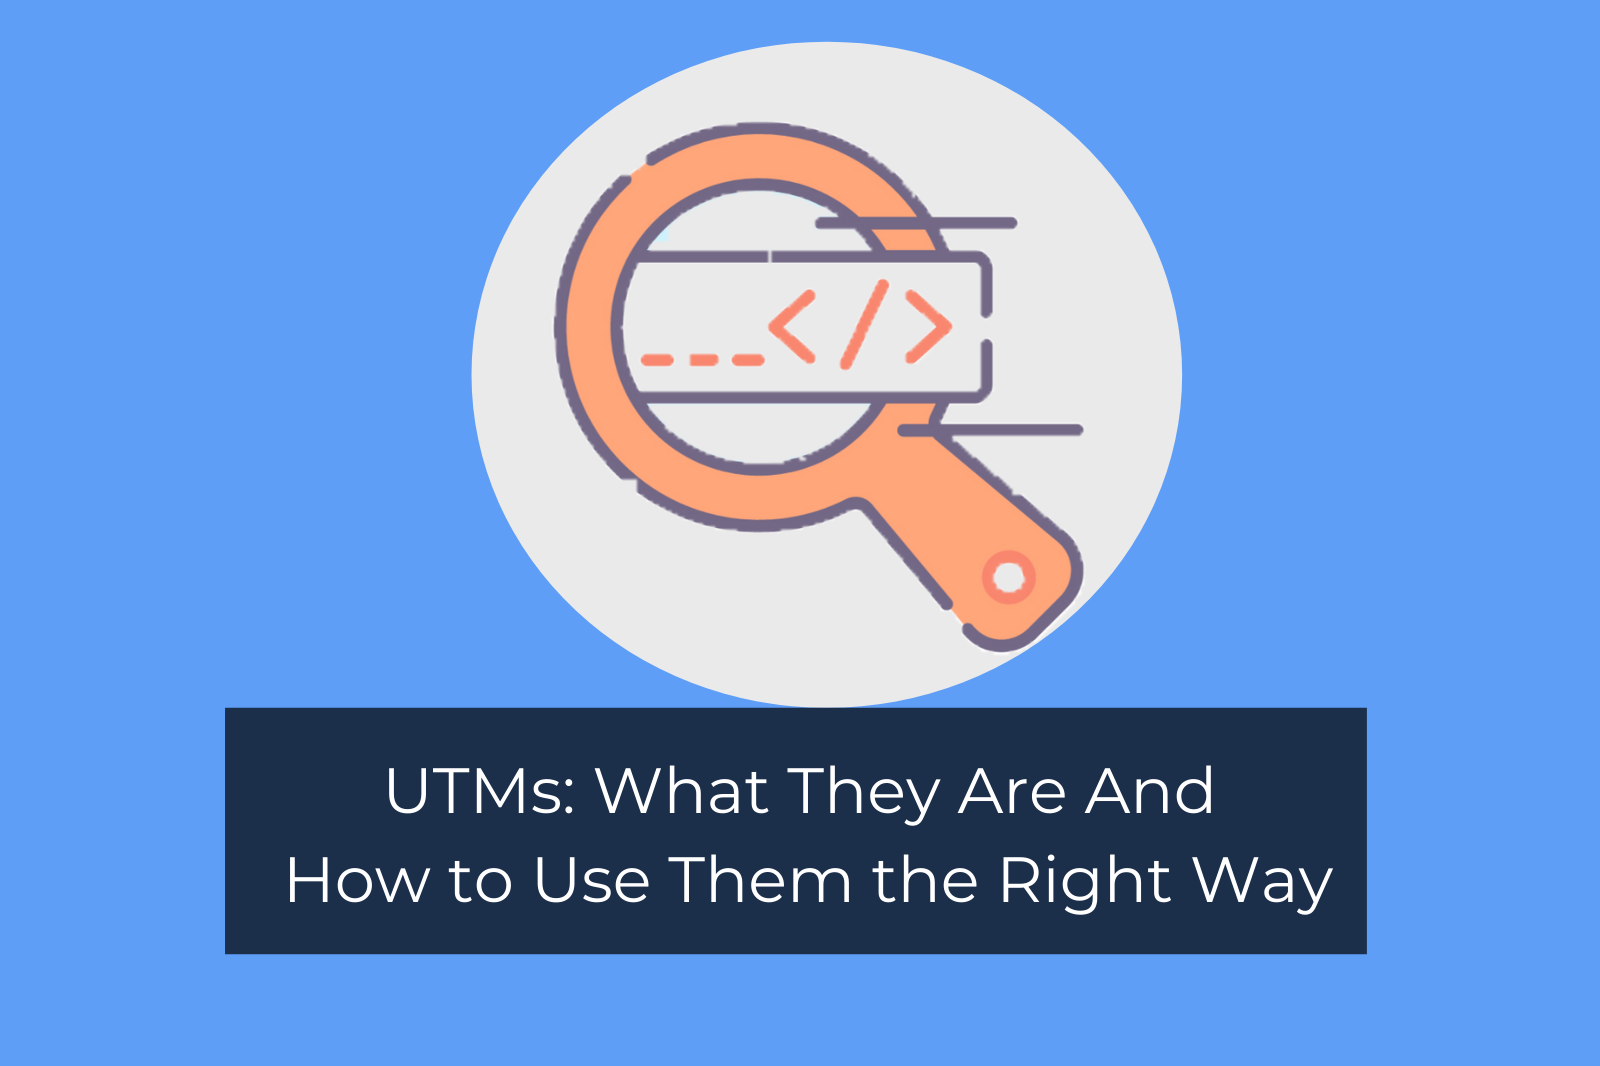 UTMs: What They Are And How to Use Them the Right Way